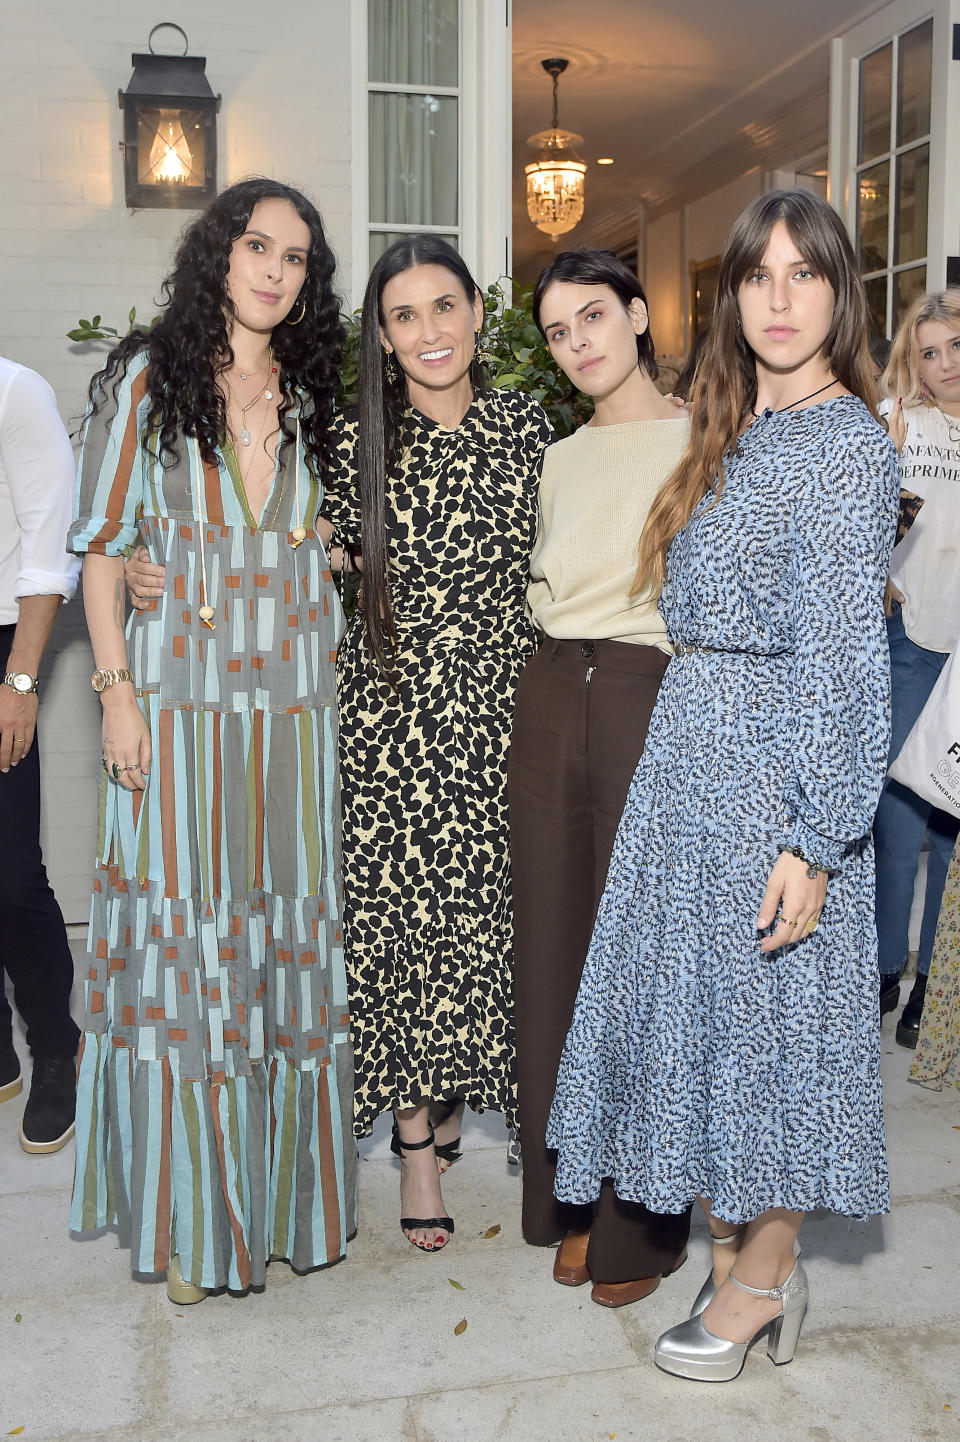 LOS ANGELES, CALIFORNIA - SEPTEMBER 23: (L-R) Rumer Willis, Demi Moore, Tallulah Willis and Scout Willis attend Demi Moore's 'Inside Out' Book Party on September 23, 2019 in Los Angeles, California. (Photo by Stefanie Keenan/Getty Images for goop)